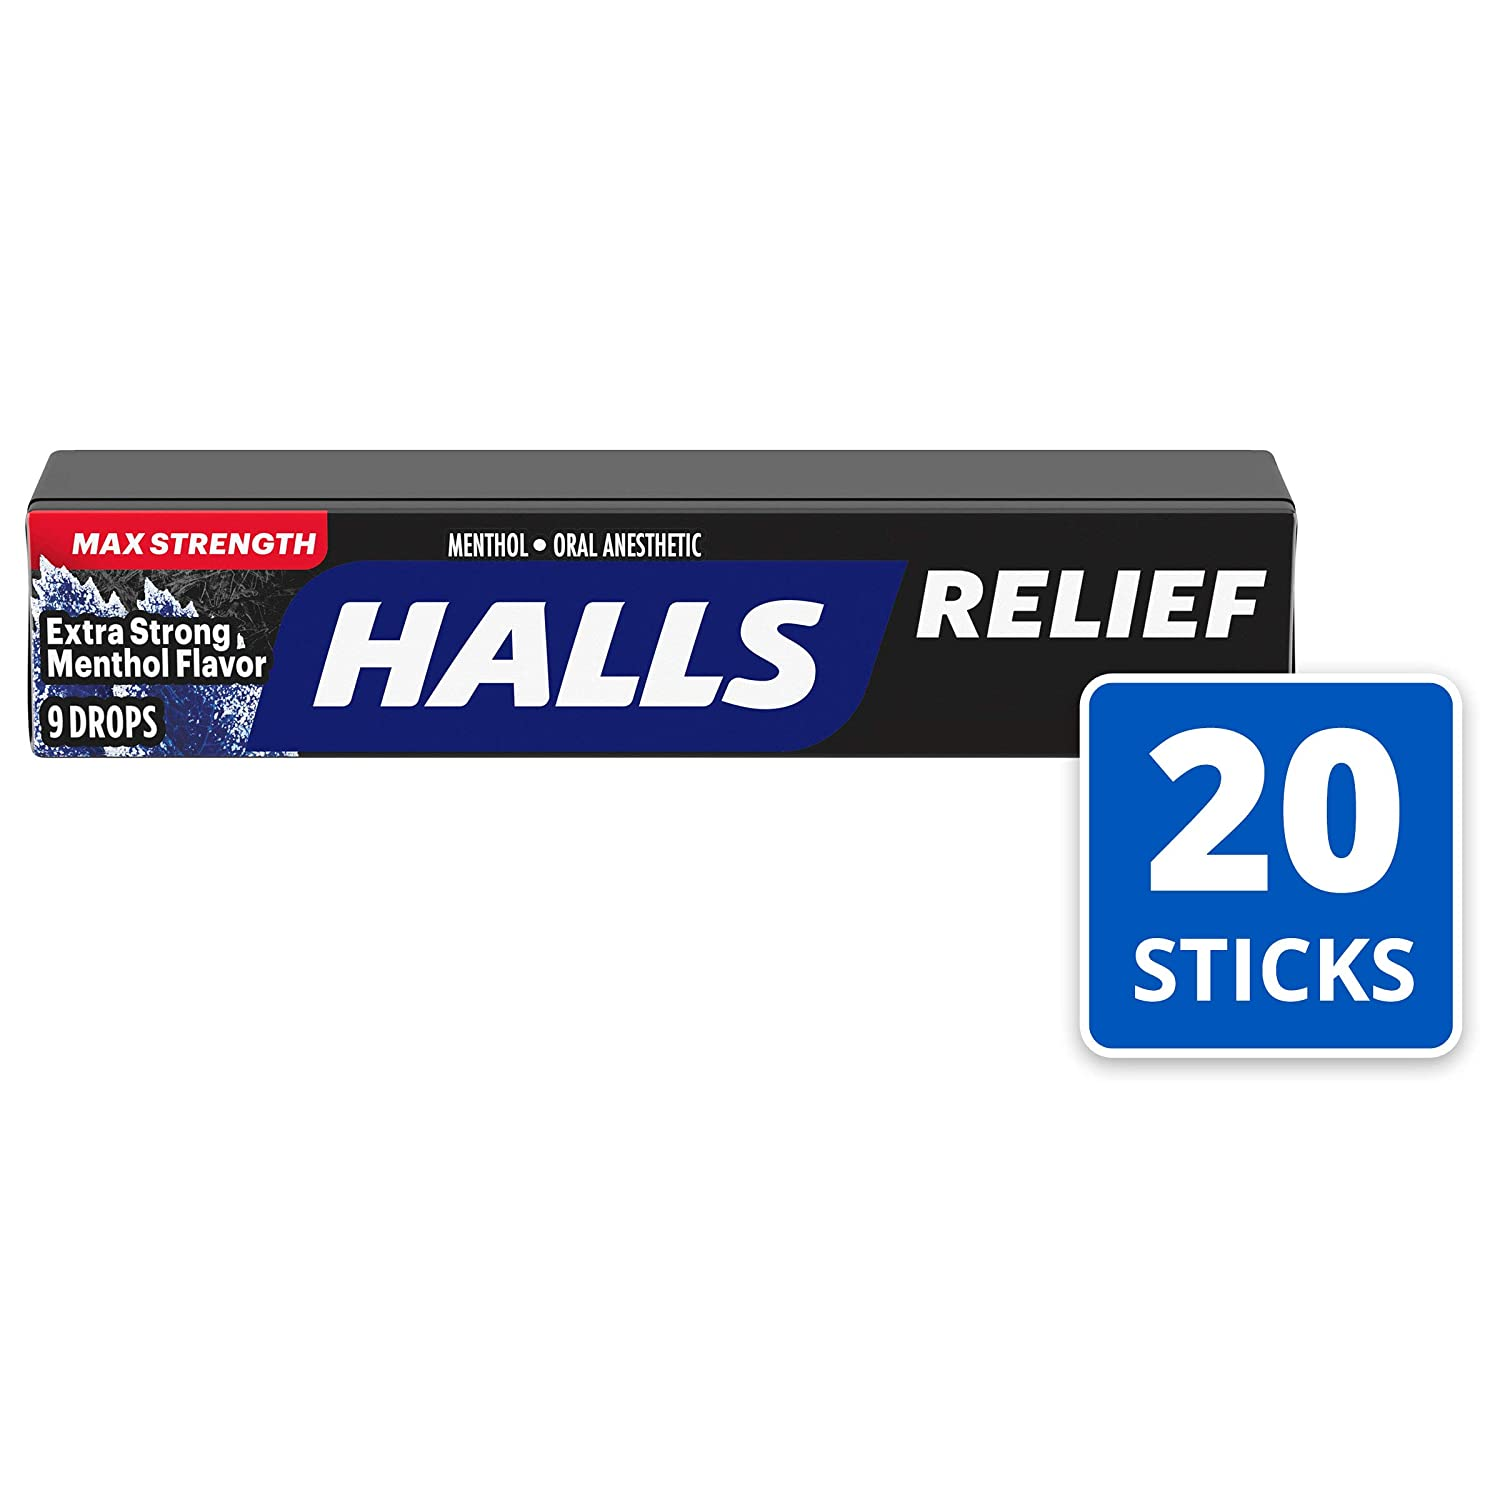 HALLS Relief Max Strength Extra Strong Menthol Throat Drops, 20 Packs of 9 Drops (180 Total Drops) : Grocery & Gourmet Food